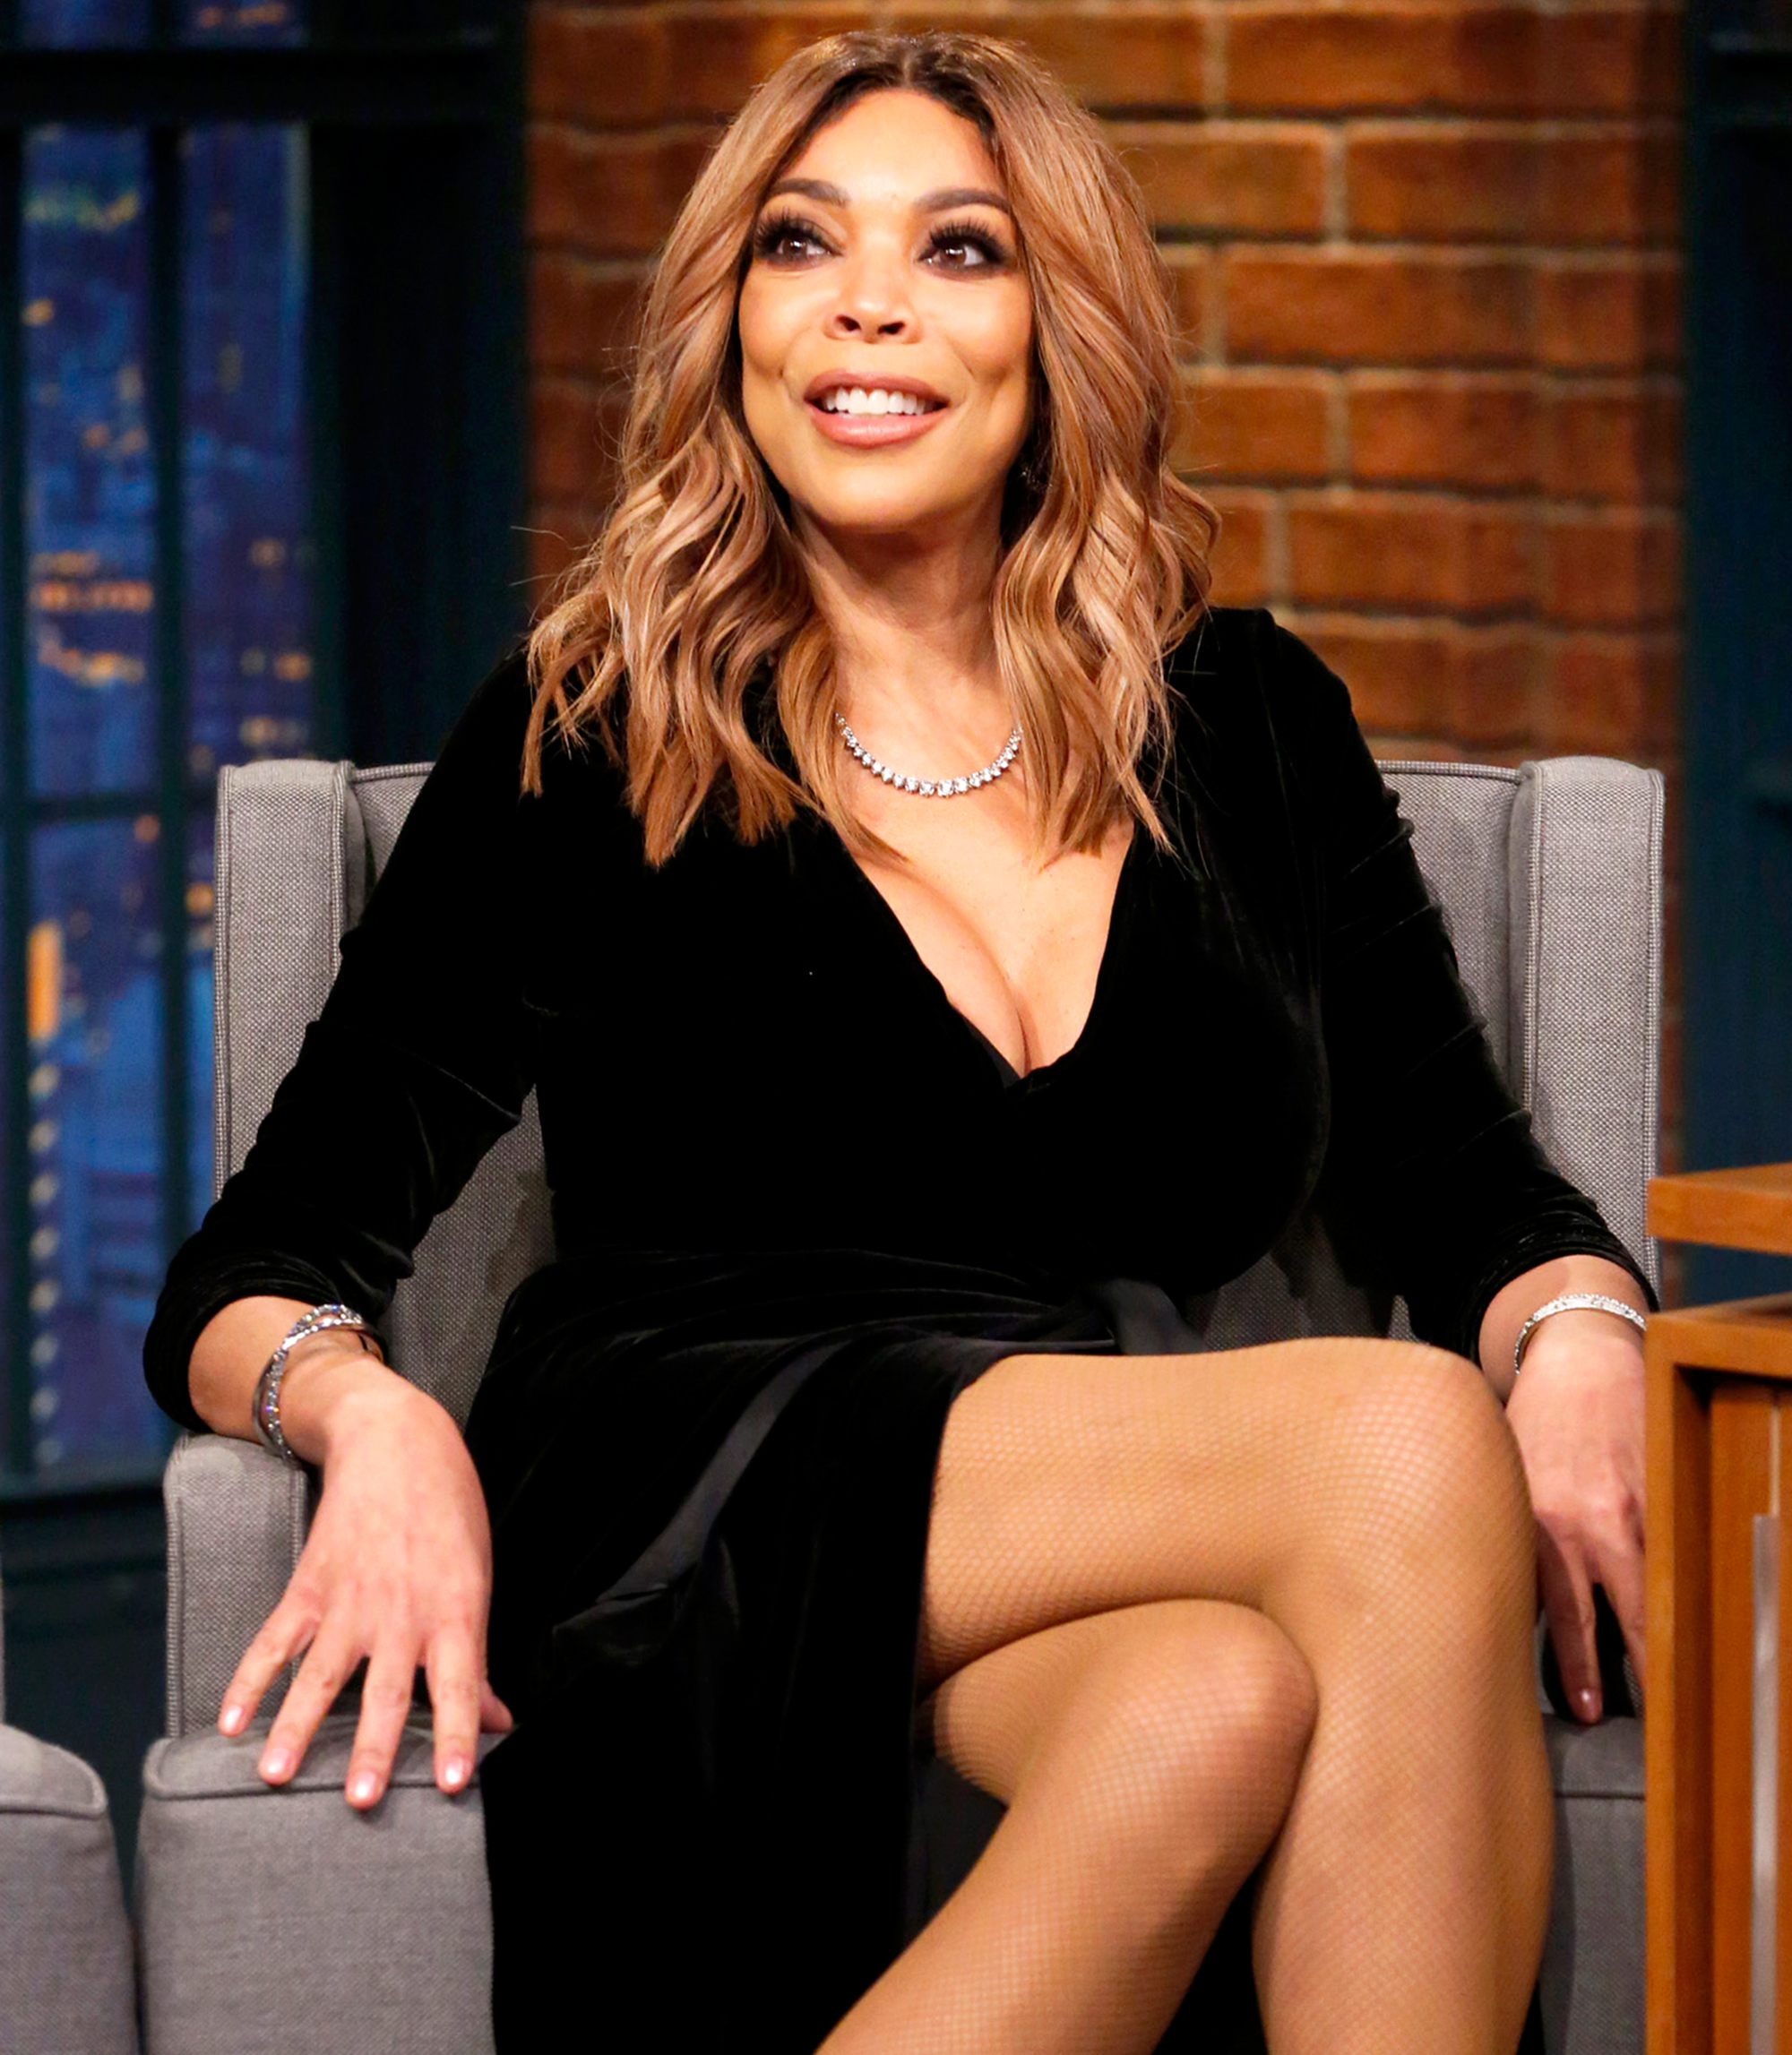 Wendy Williams sets return date to her TV show